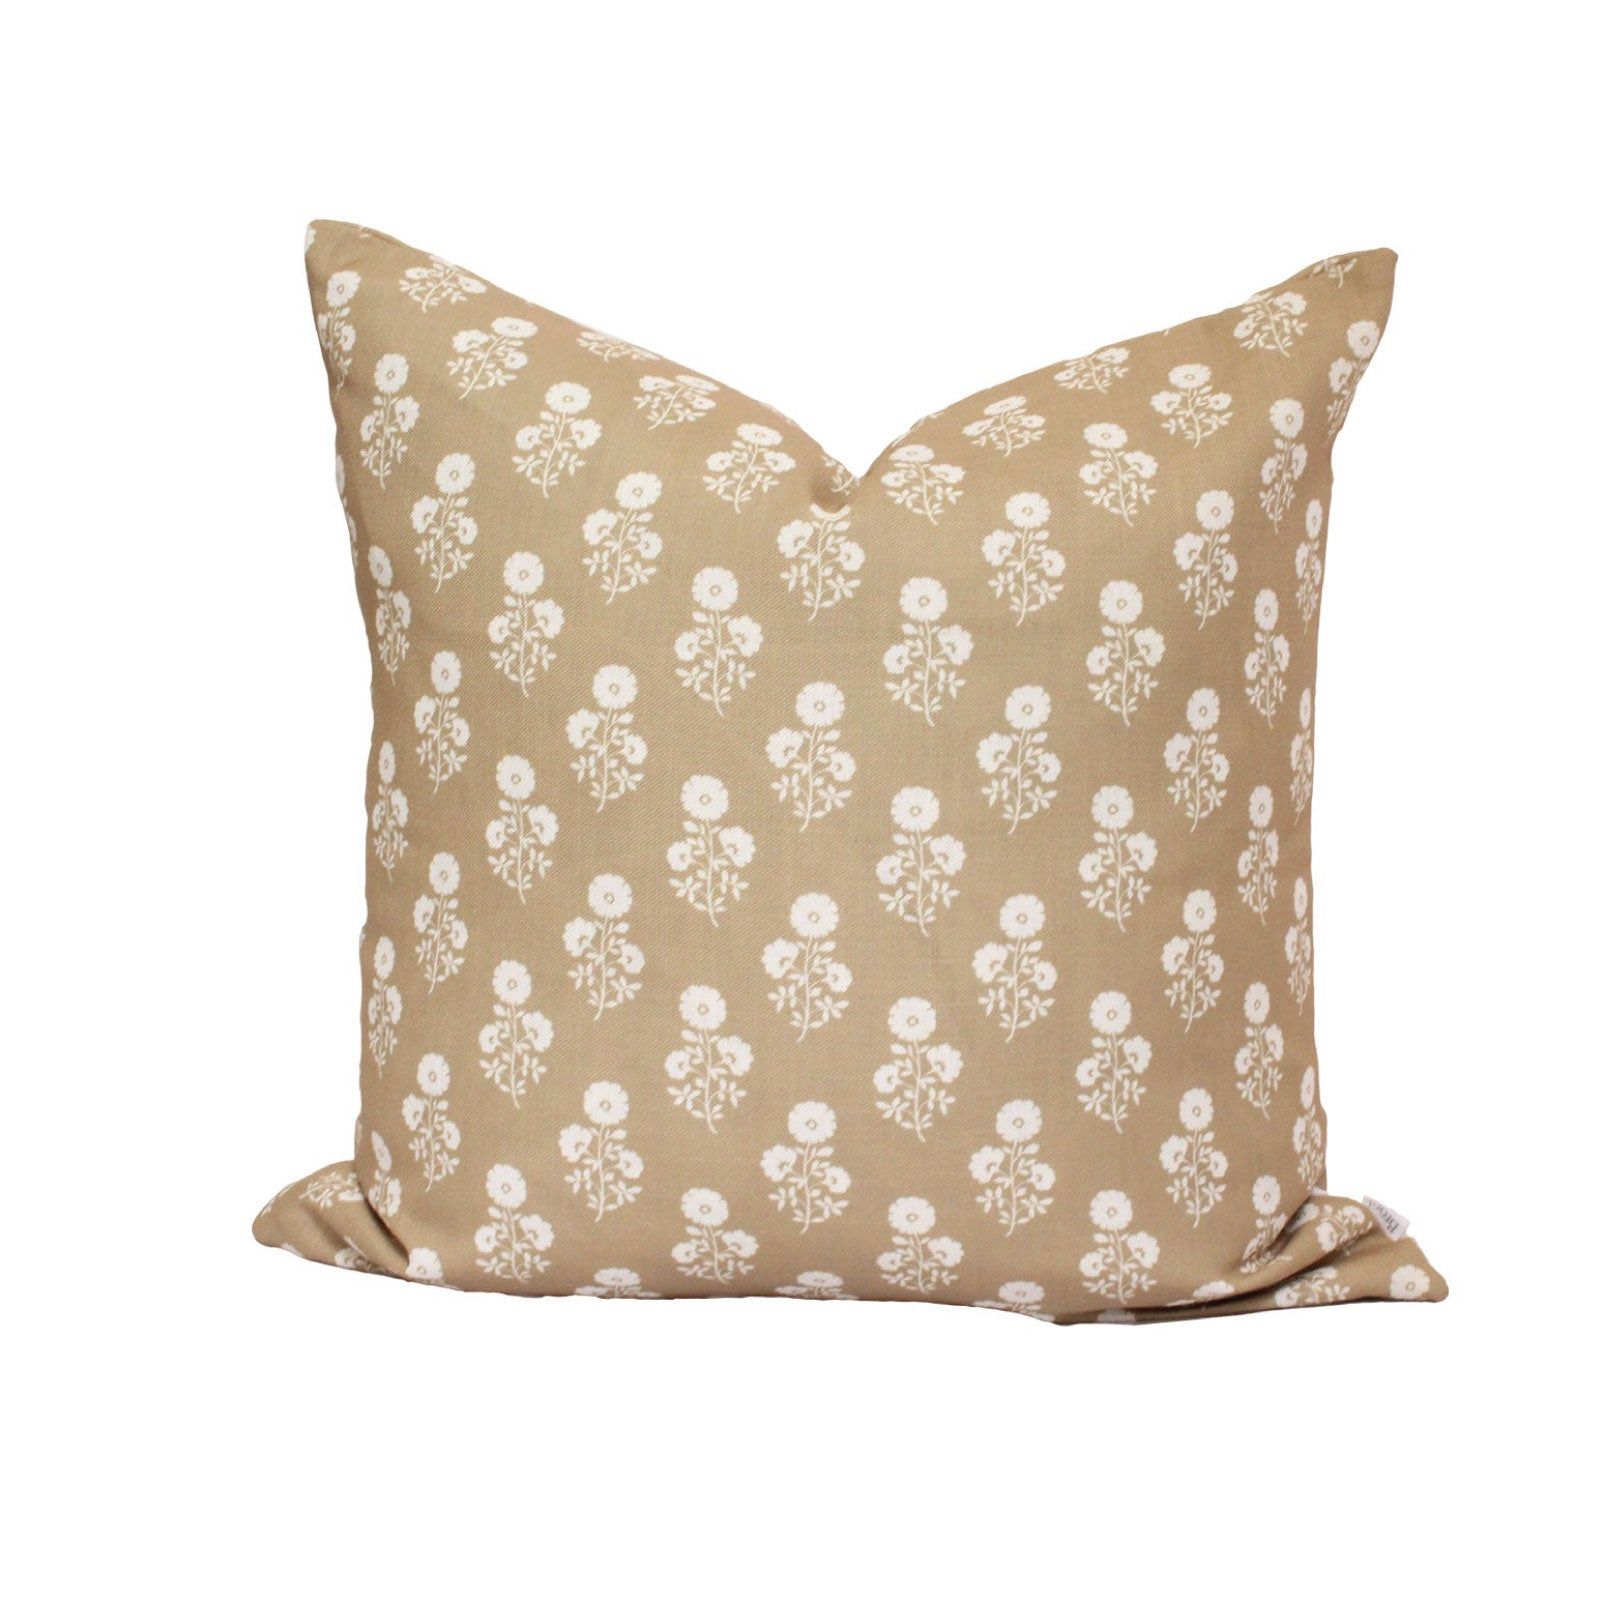 Julia Floral Pillow in Camel